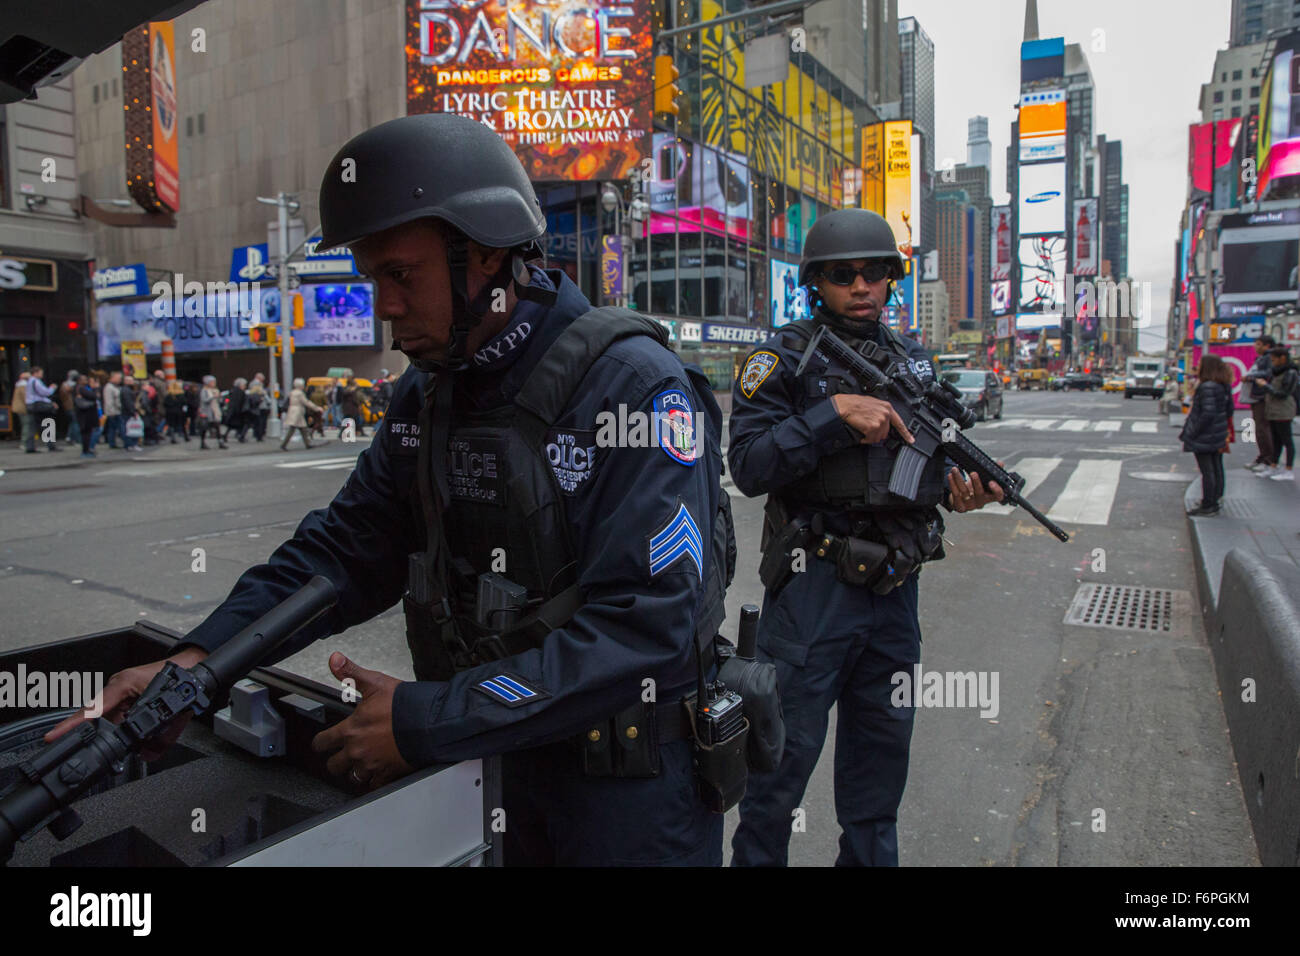 New York, New York, USA. 18th Nov, 2015. The NYPD increased security in Times Square in New York because of the - Stock Image